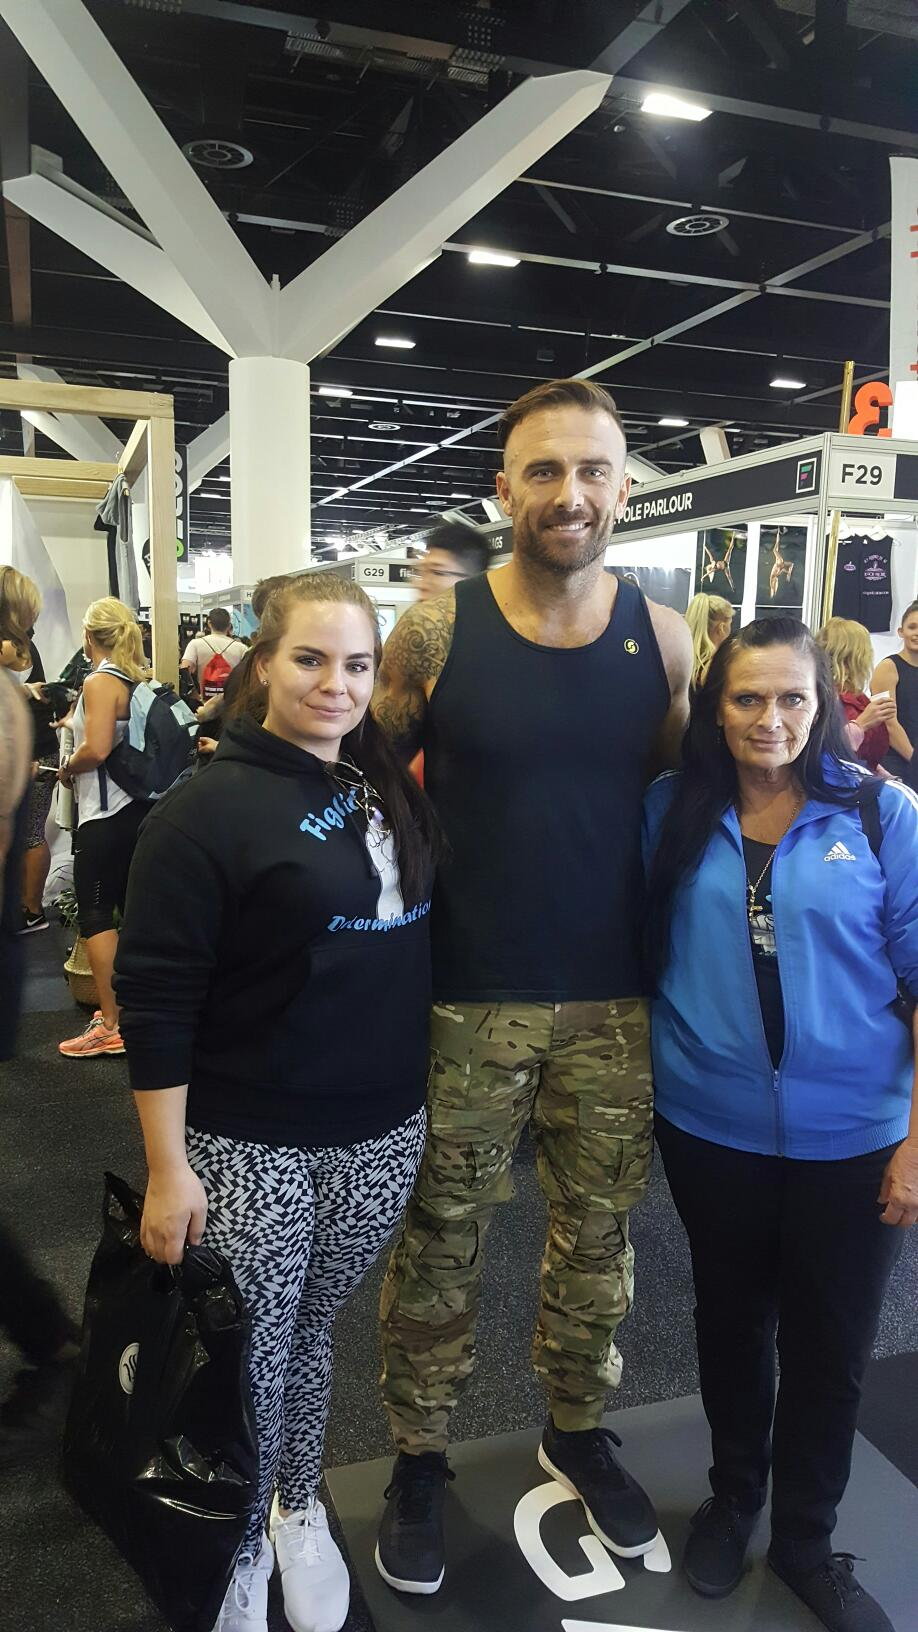 Hanging out with Commando at Sydney Fitness Expo 2018.